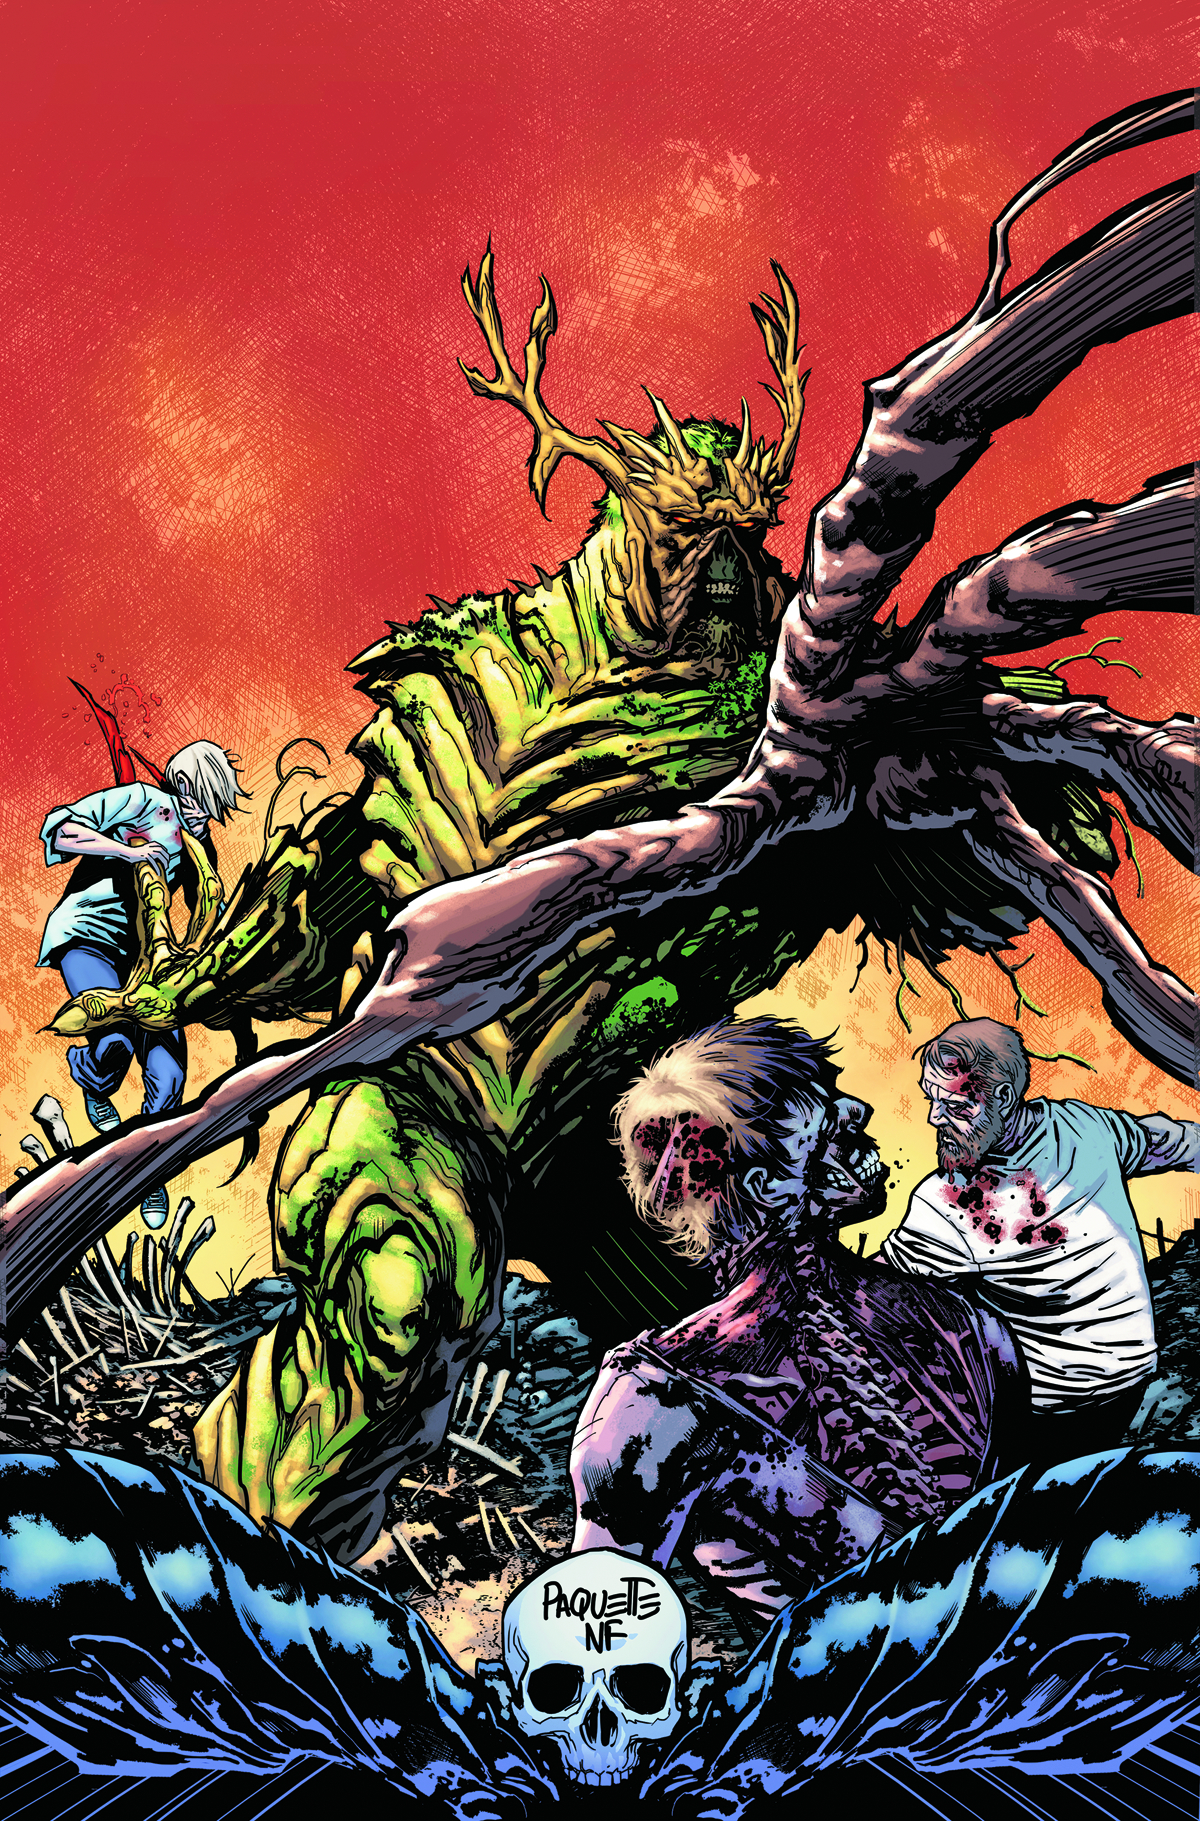 SWAMP THING TP VOL 02 FAMILY TREE